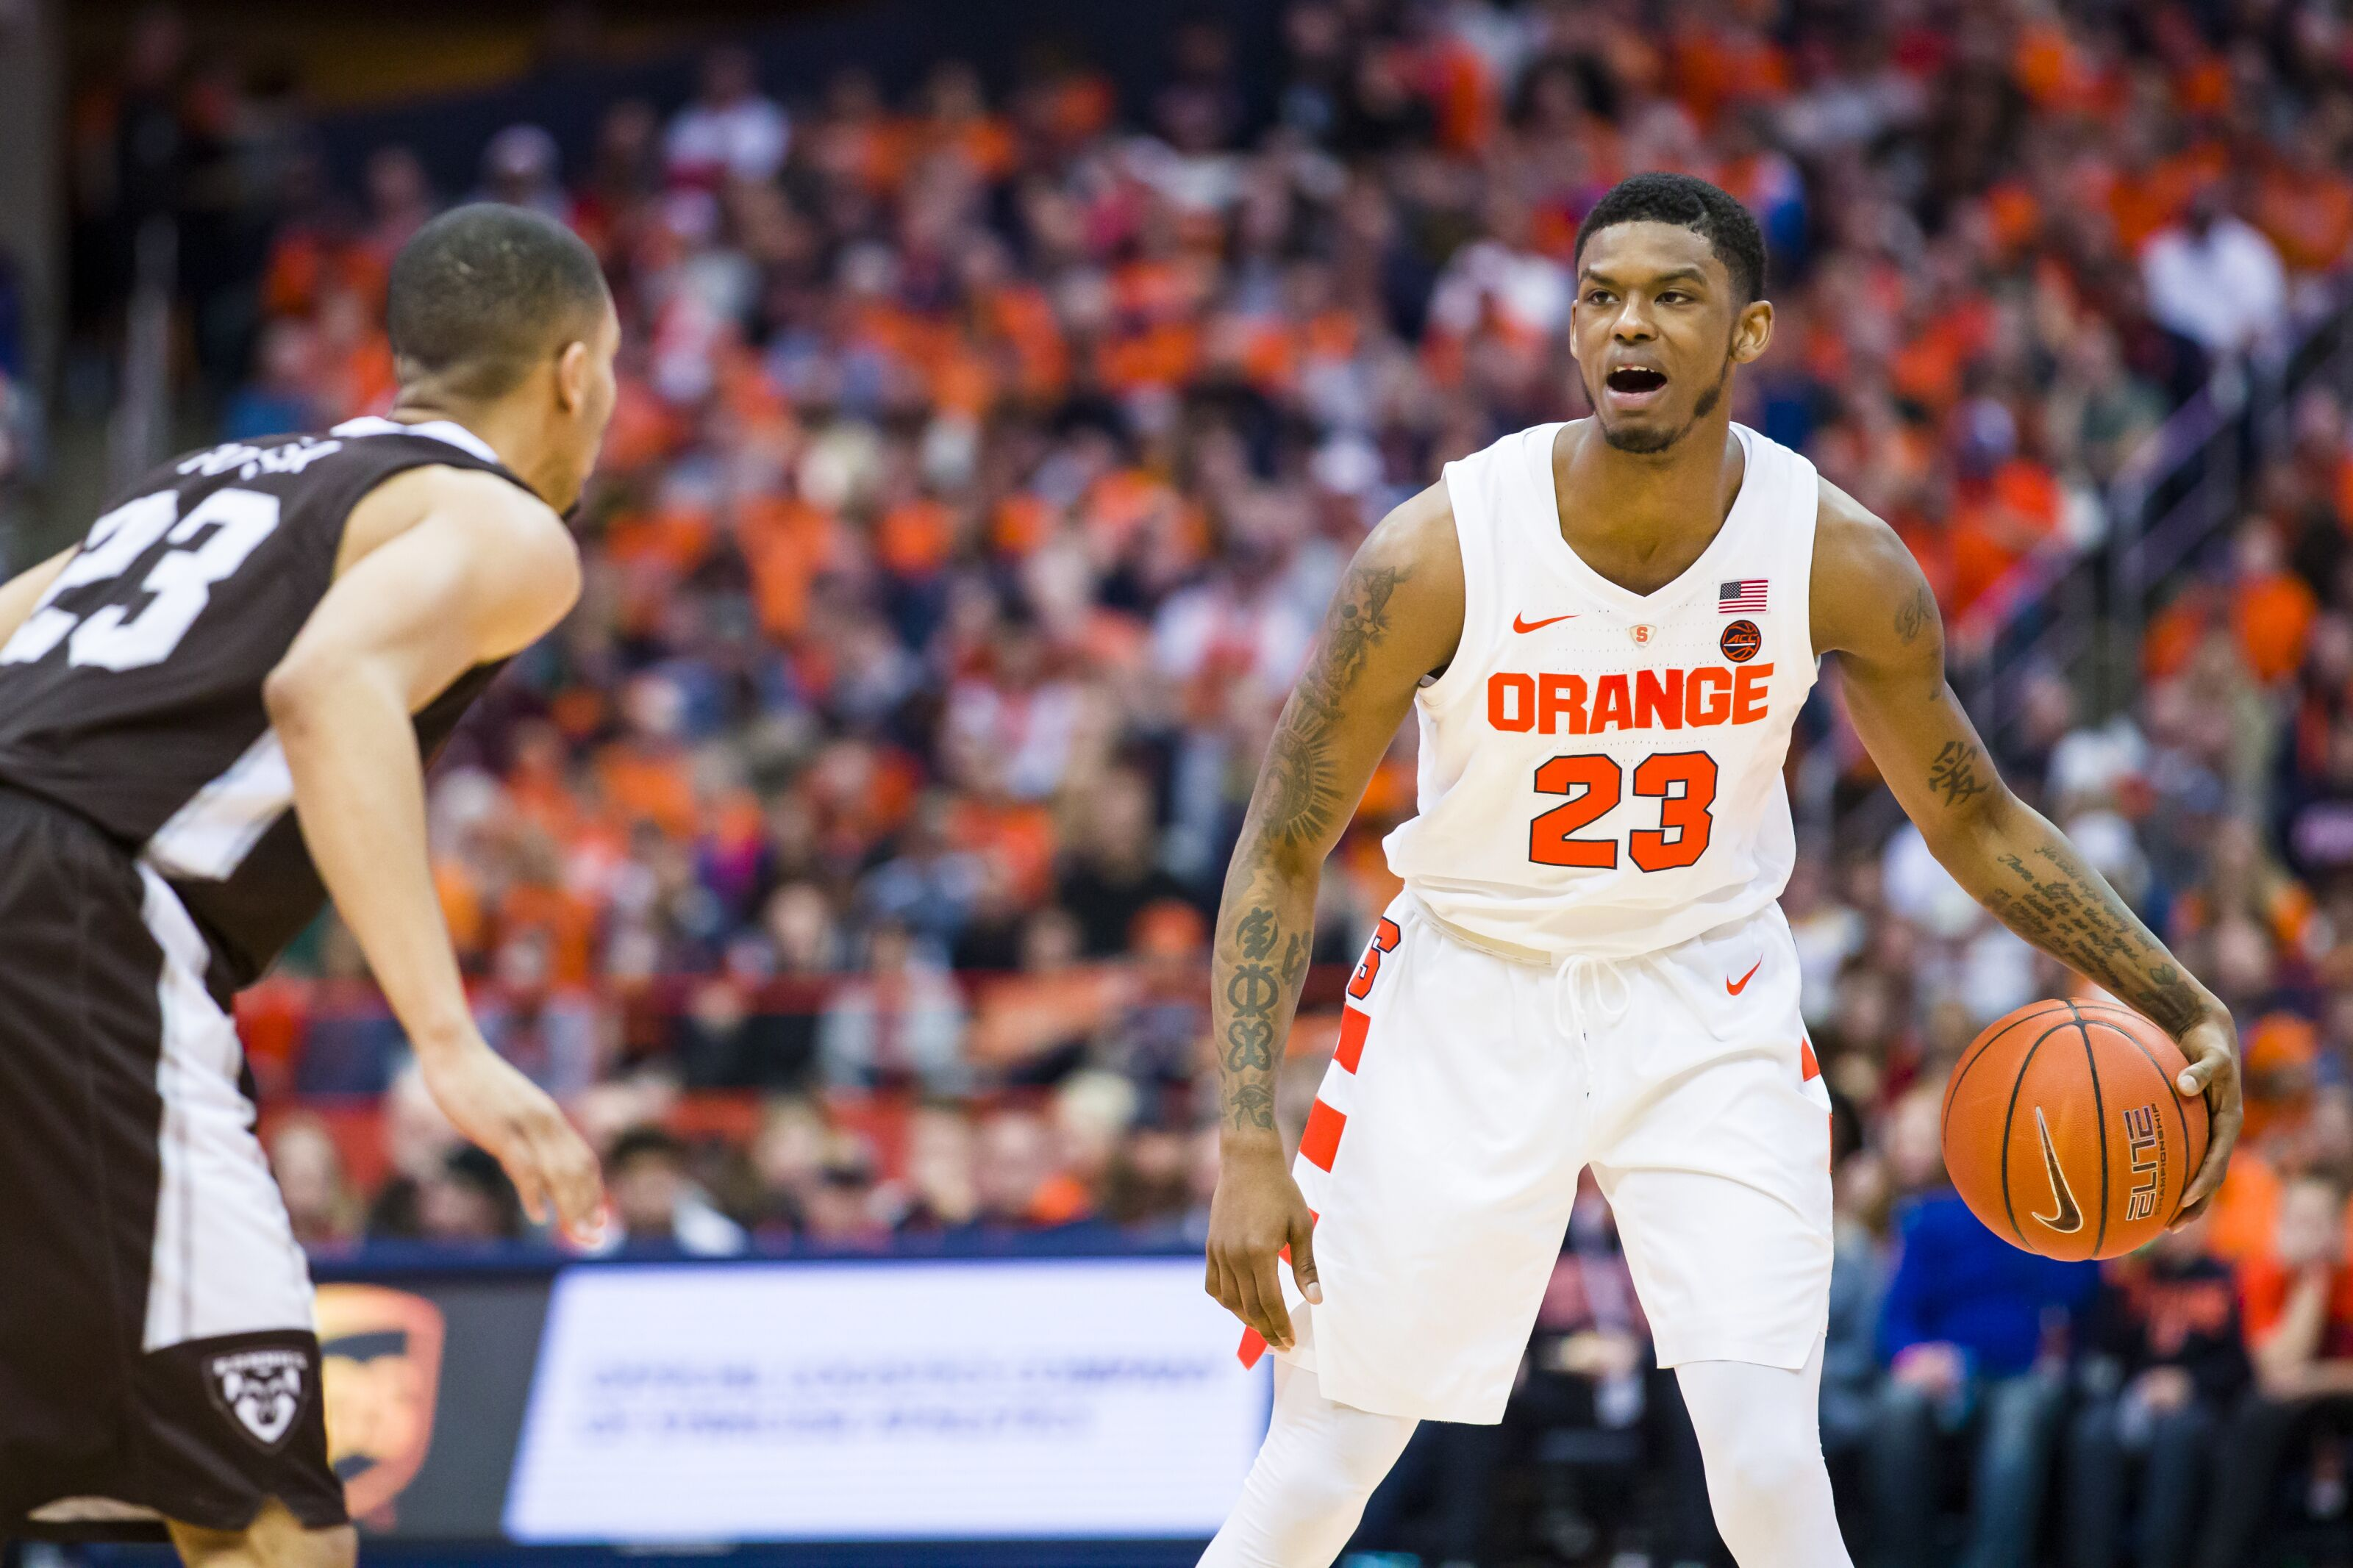 Syracuse Basketball Acc Play Will Prove Whether Orange Are For Real